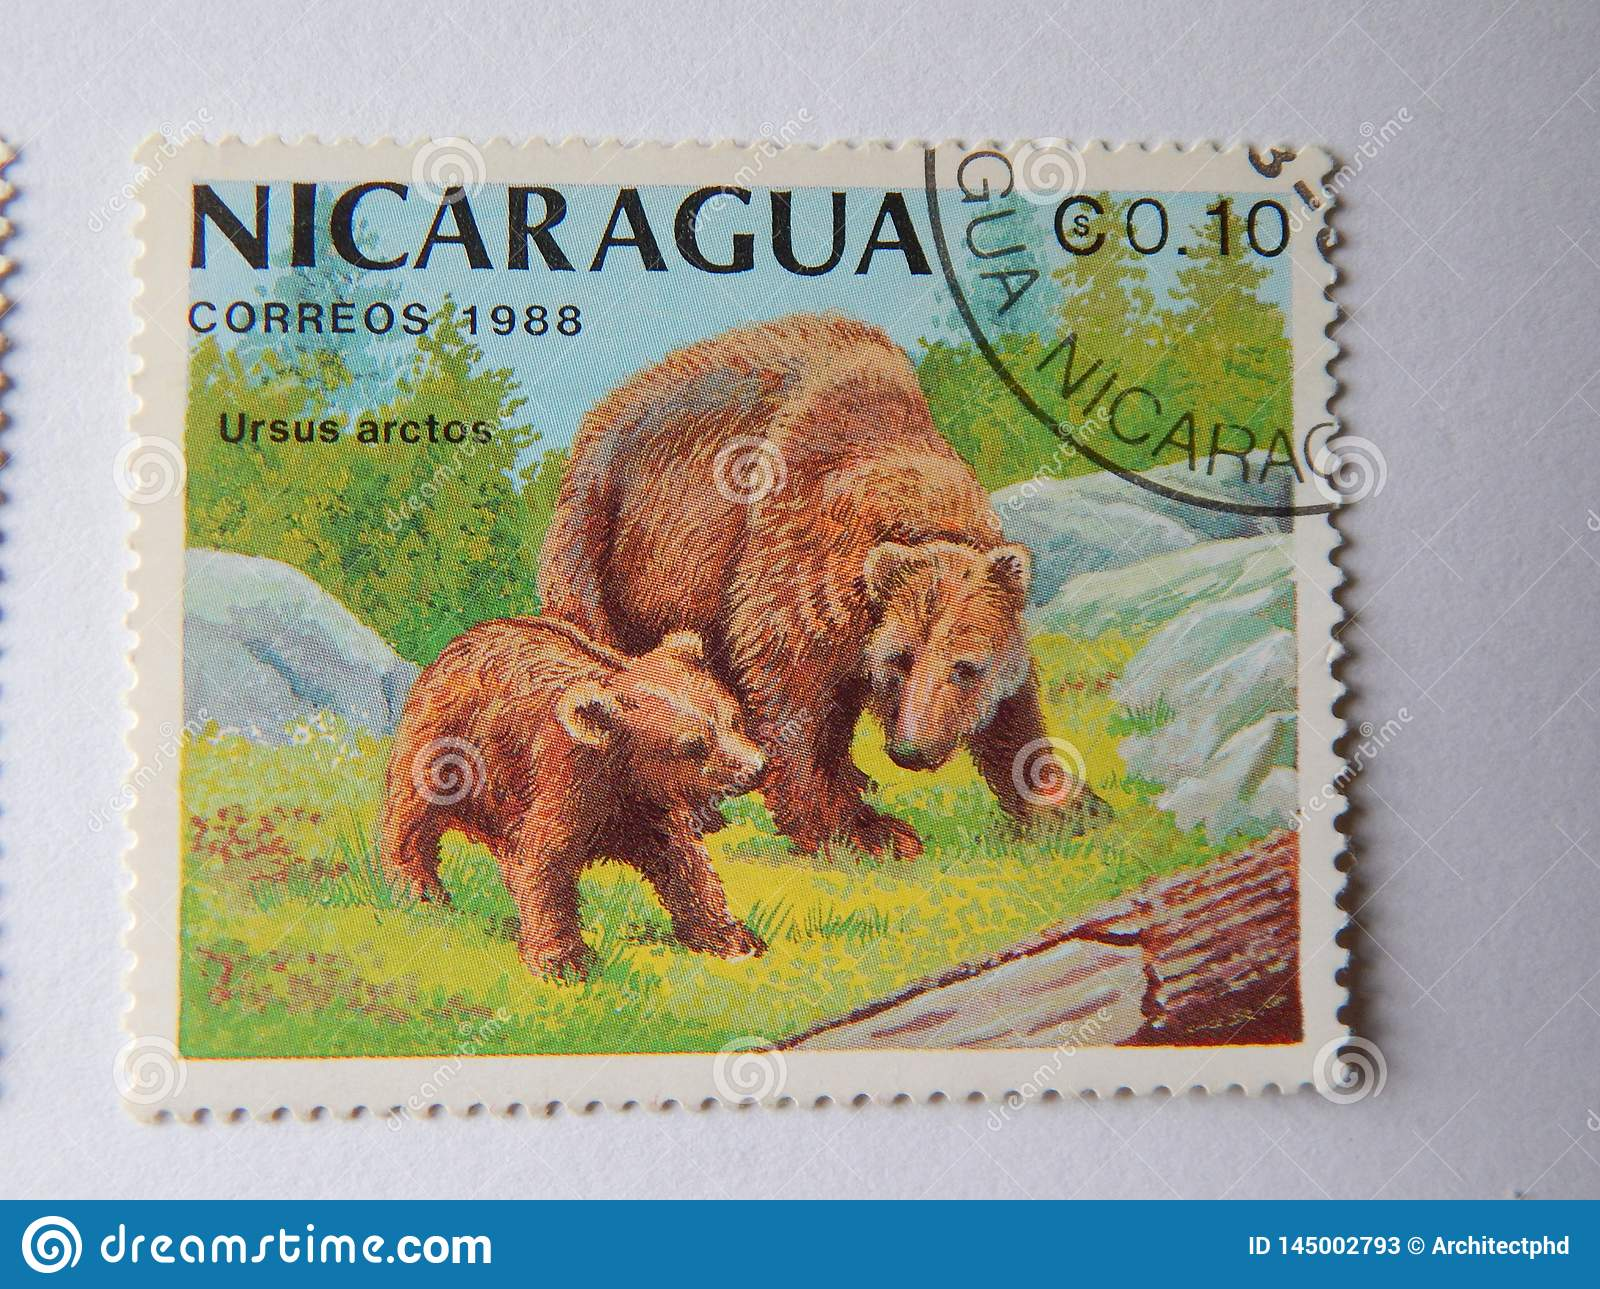 KIEV, UKRAINE - APRIL 16, 2019: Collection of postage stamps with animals